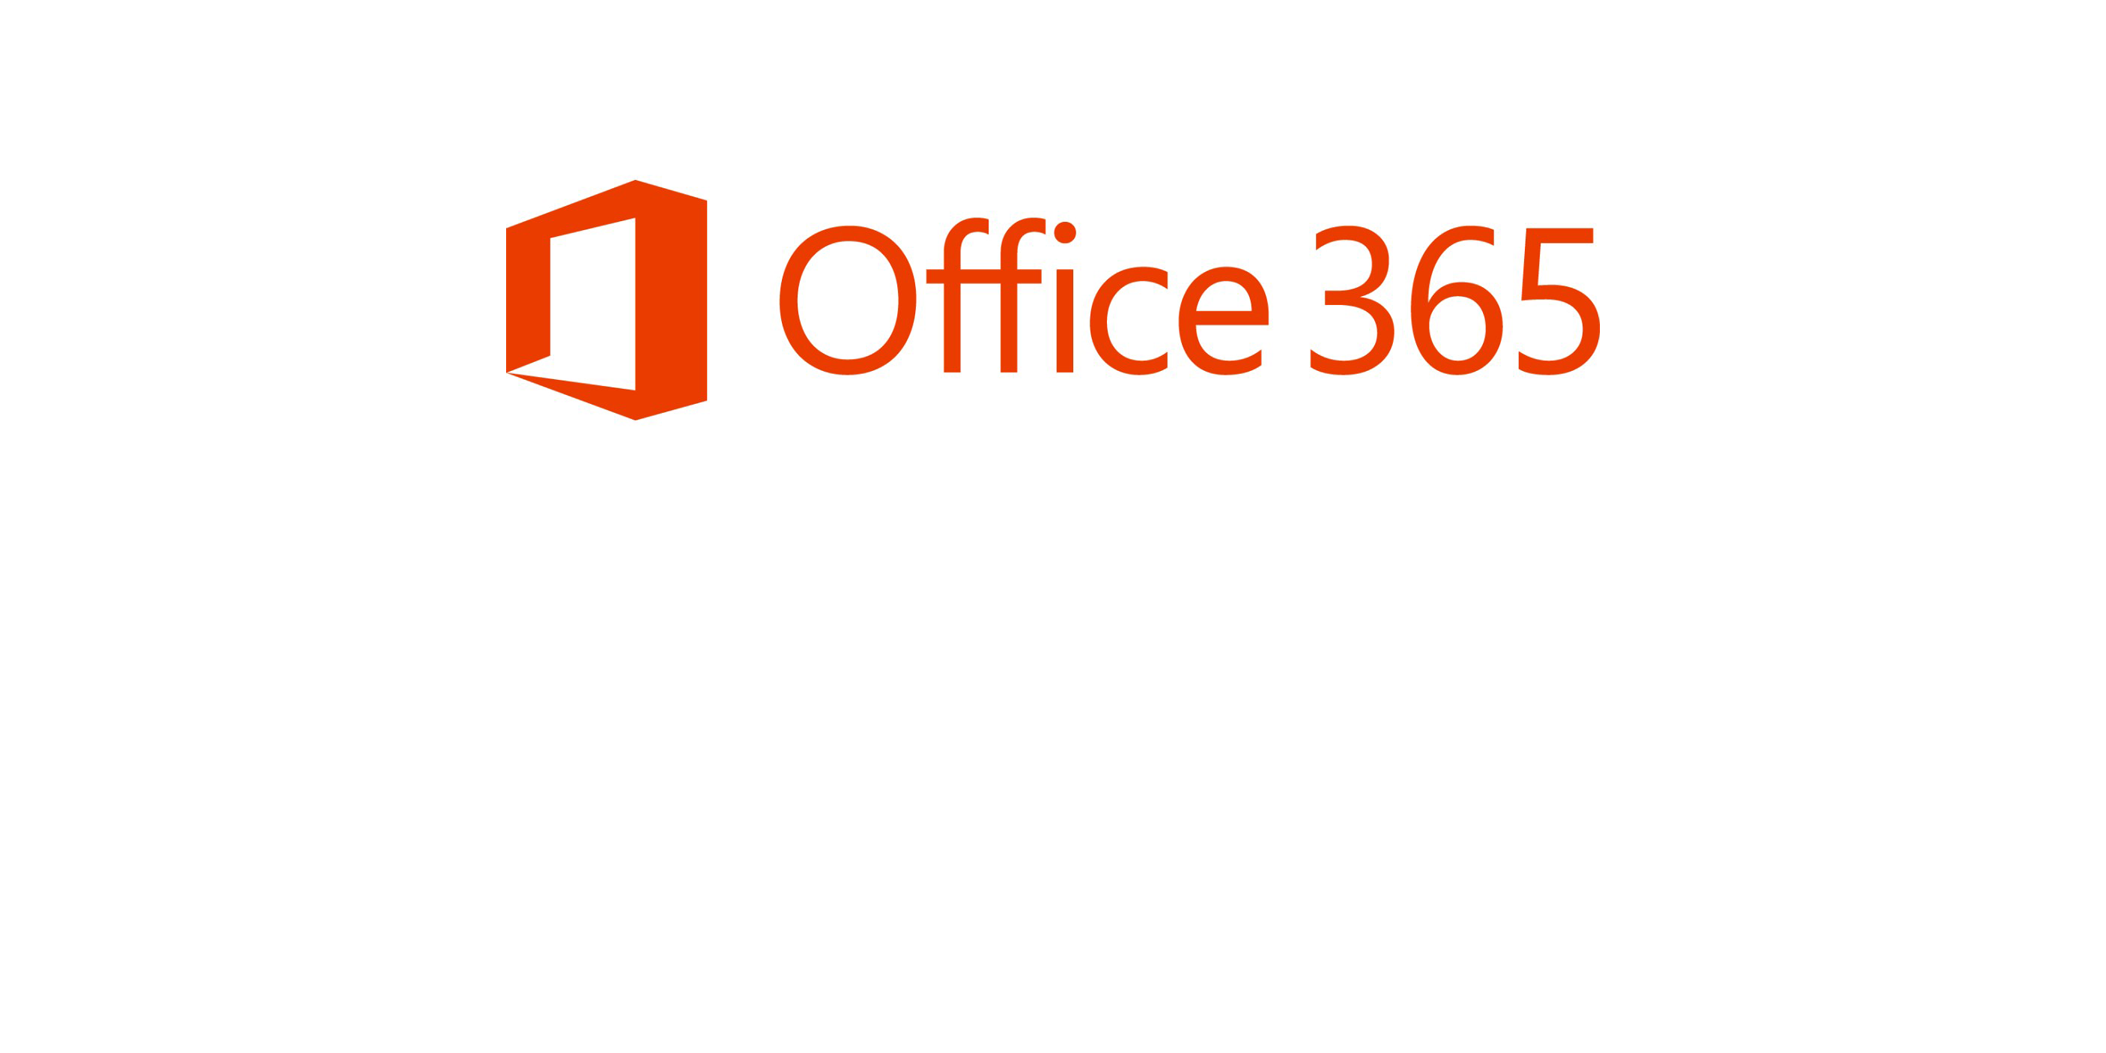 office 365 calendar integration|help desk software|nethelpdesk